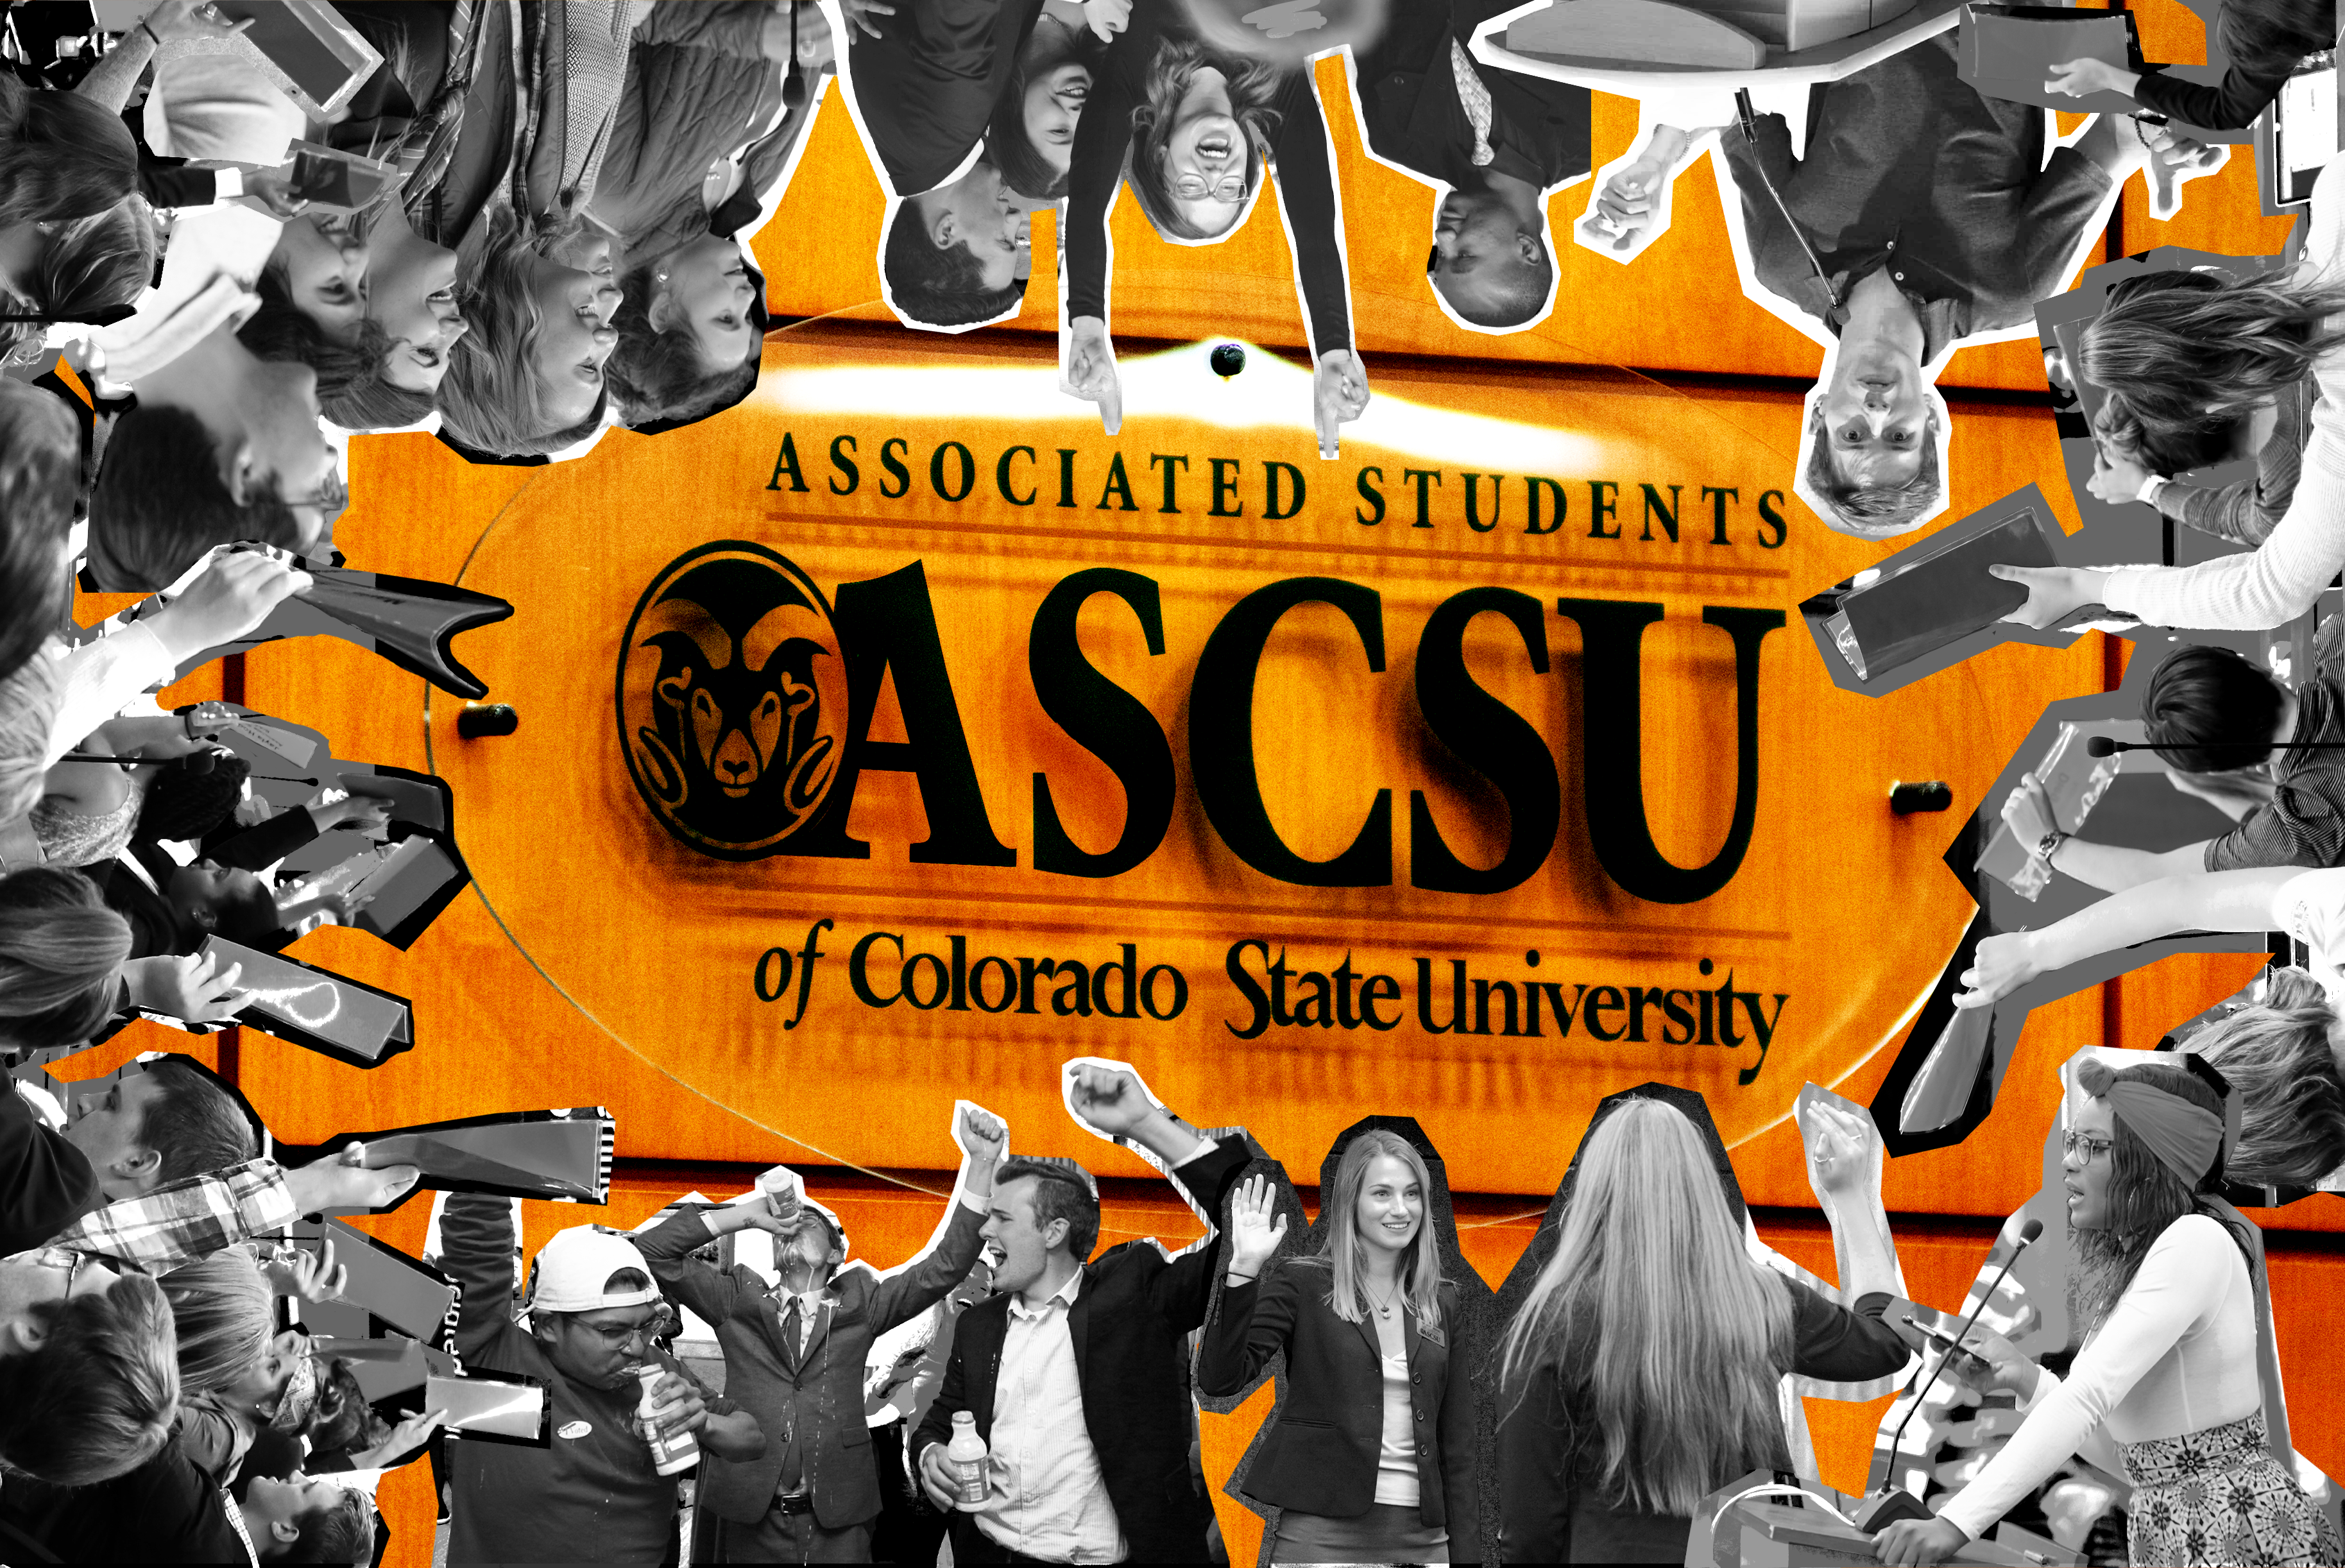 Photo collage of ASCSU members doing various activities laid over the ASCSU Senate sign